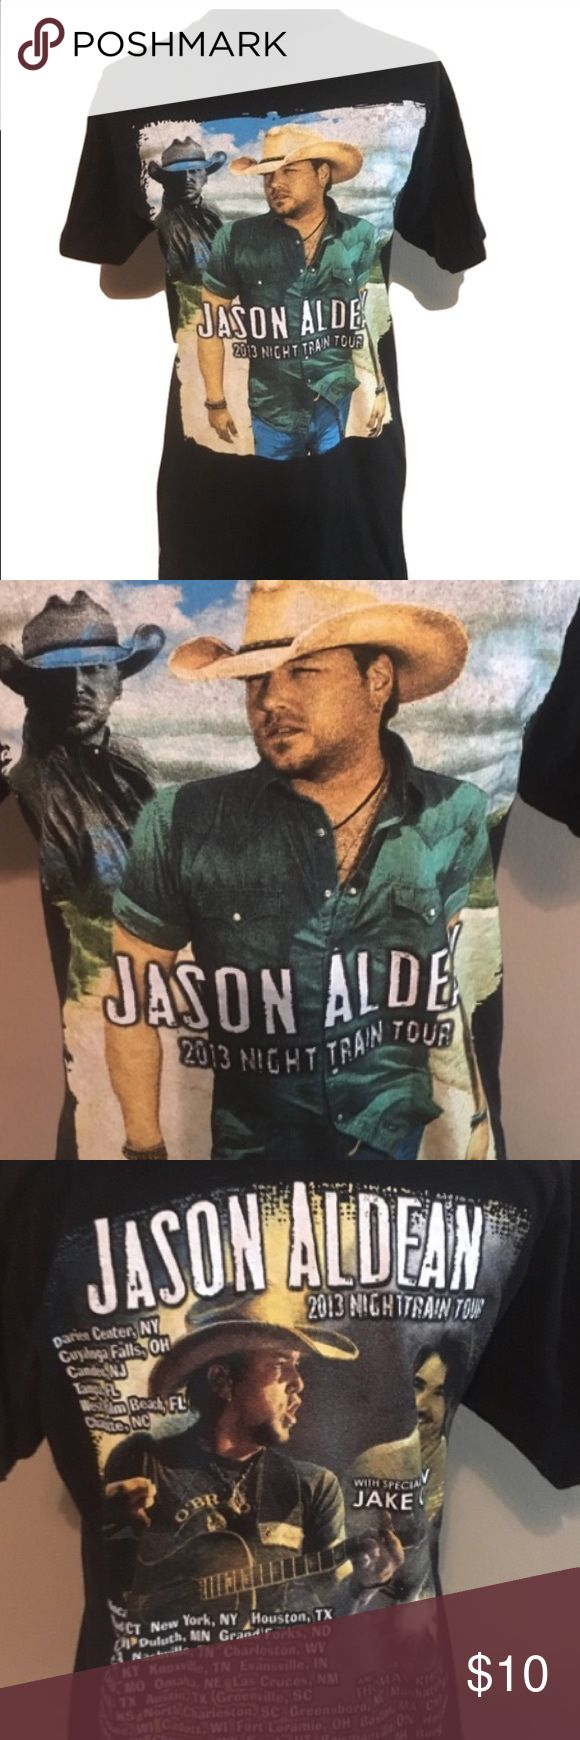 Jason Aldean 2013 night train tour band tee medium Jason Aldean tour tee shirt. No size tag. 19 arm to arm and 29 shoulder to hem. Listing as medium. Check your measurements. It may fit smaller or larger. Unisex band tee Tops Tees - Short Sleeve